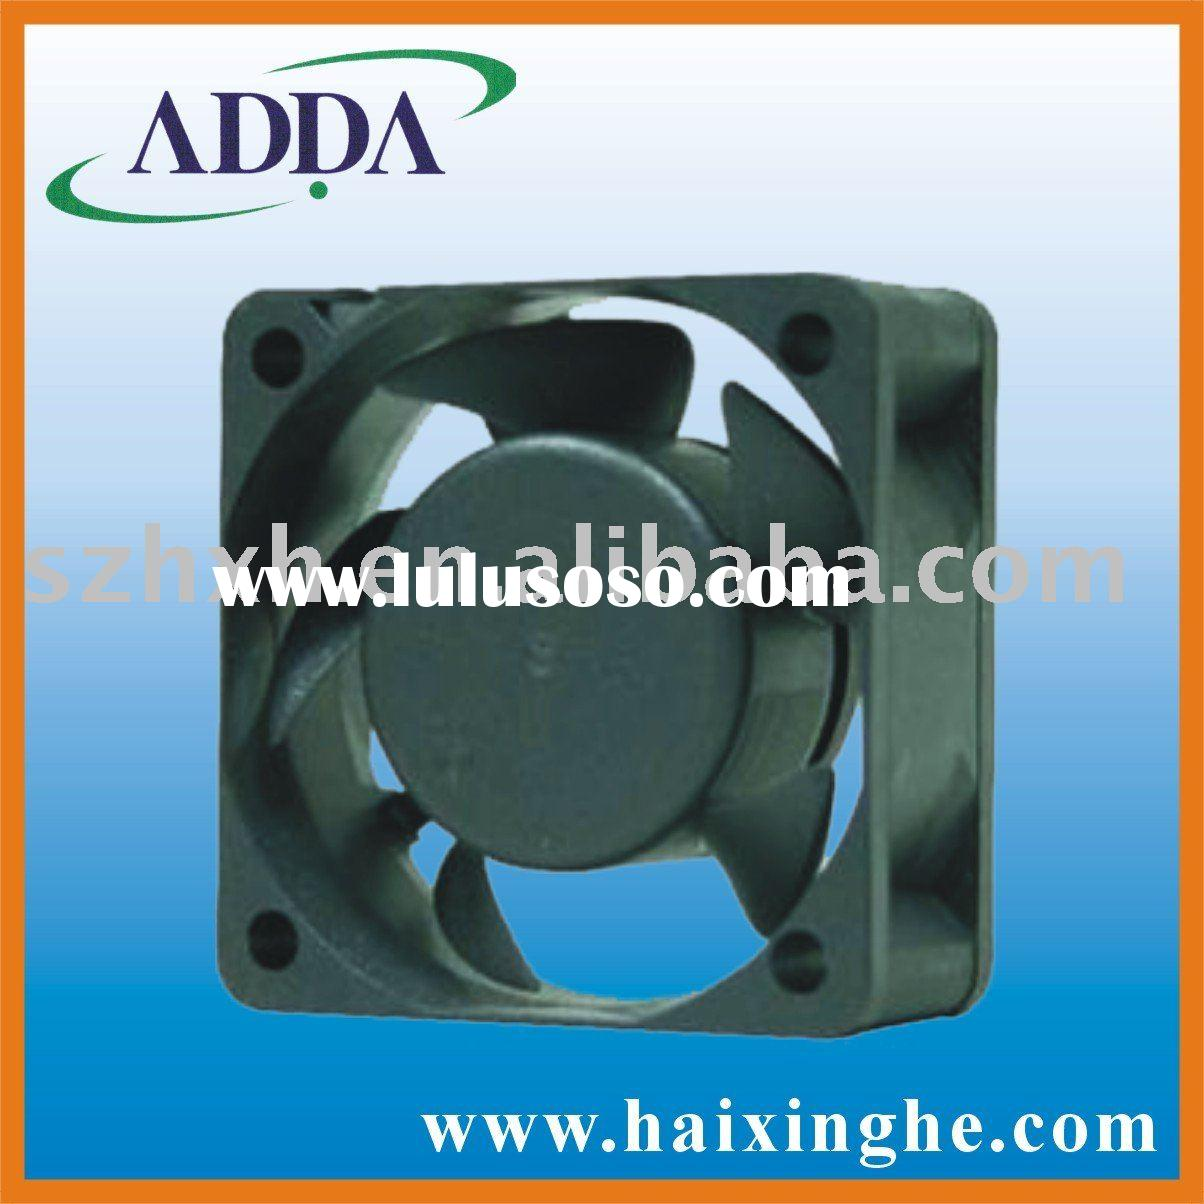 ADDA 50x50x20mm cooling fans